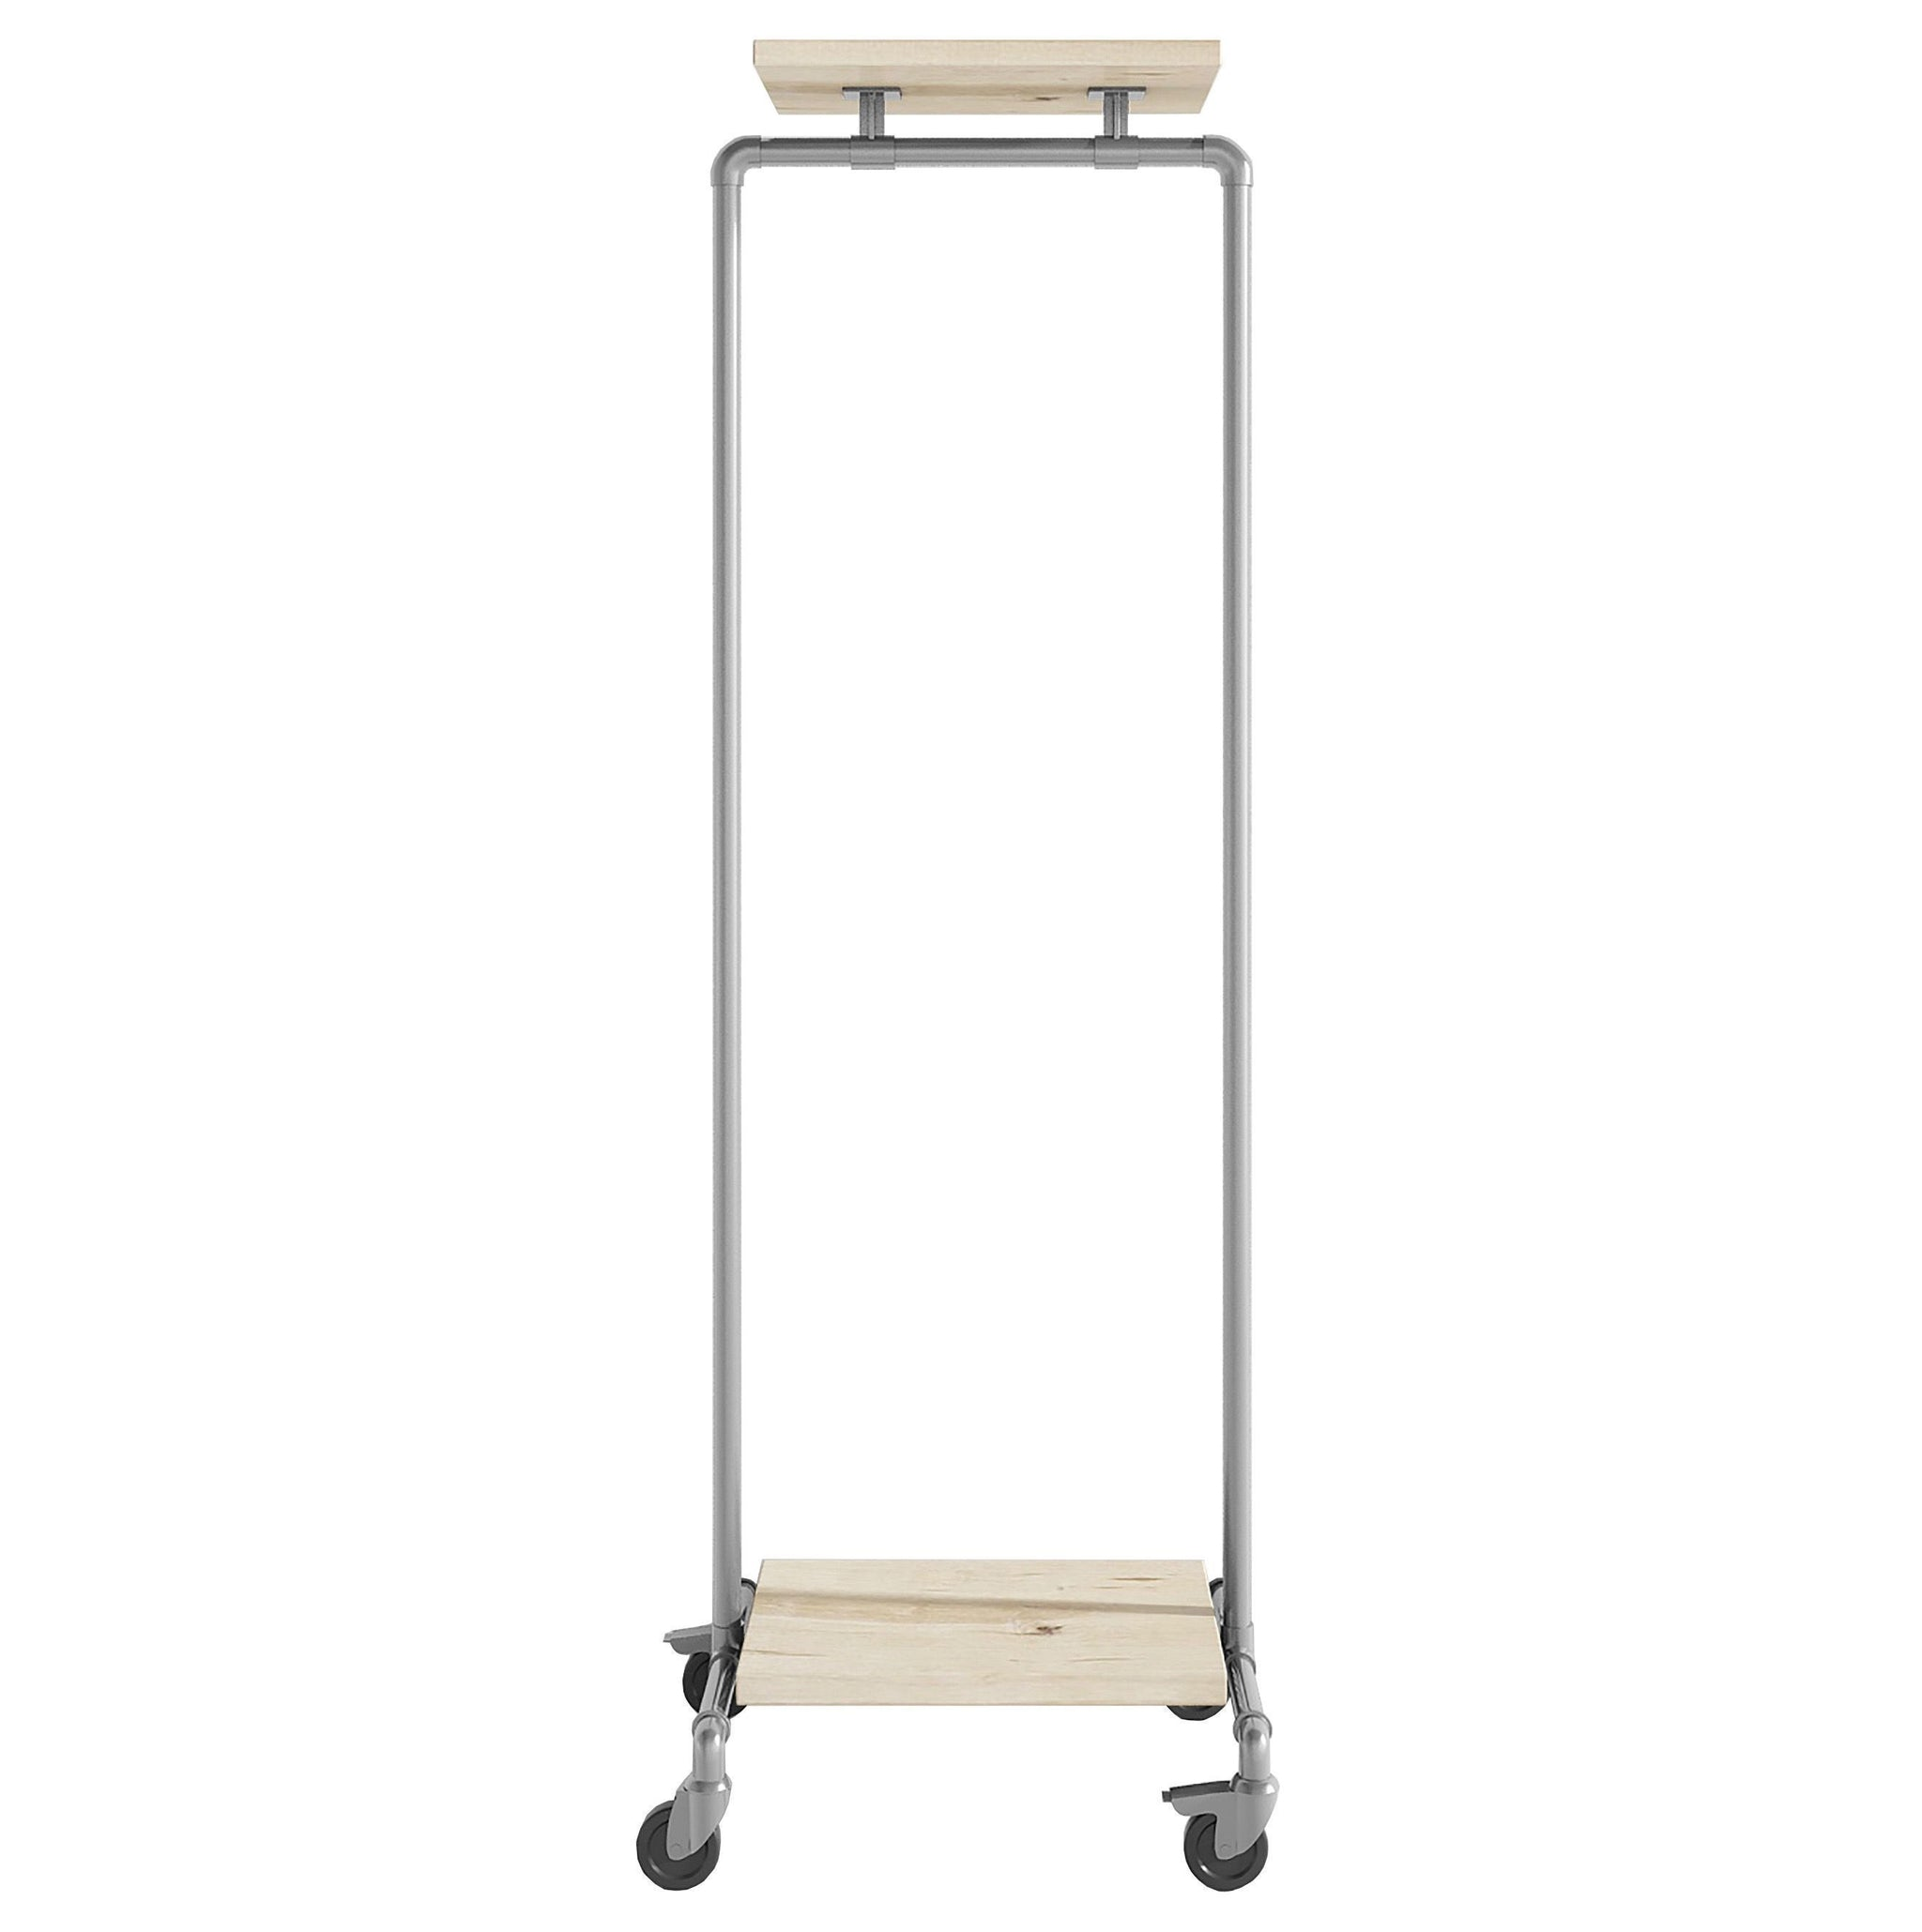 Ziito Clothes Rail C1 / 50 cm / Med Wood Double Shelf Tøjstativ